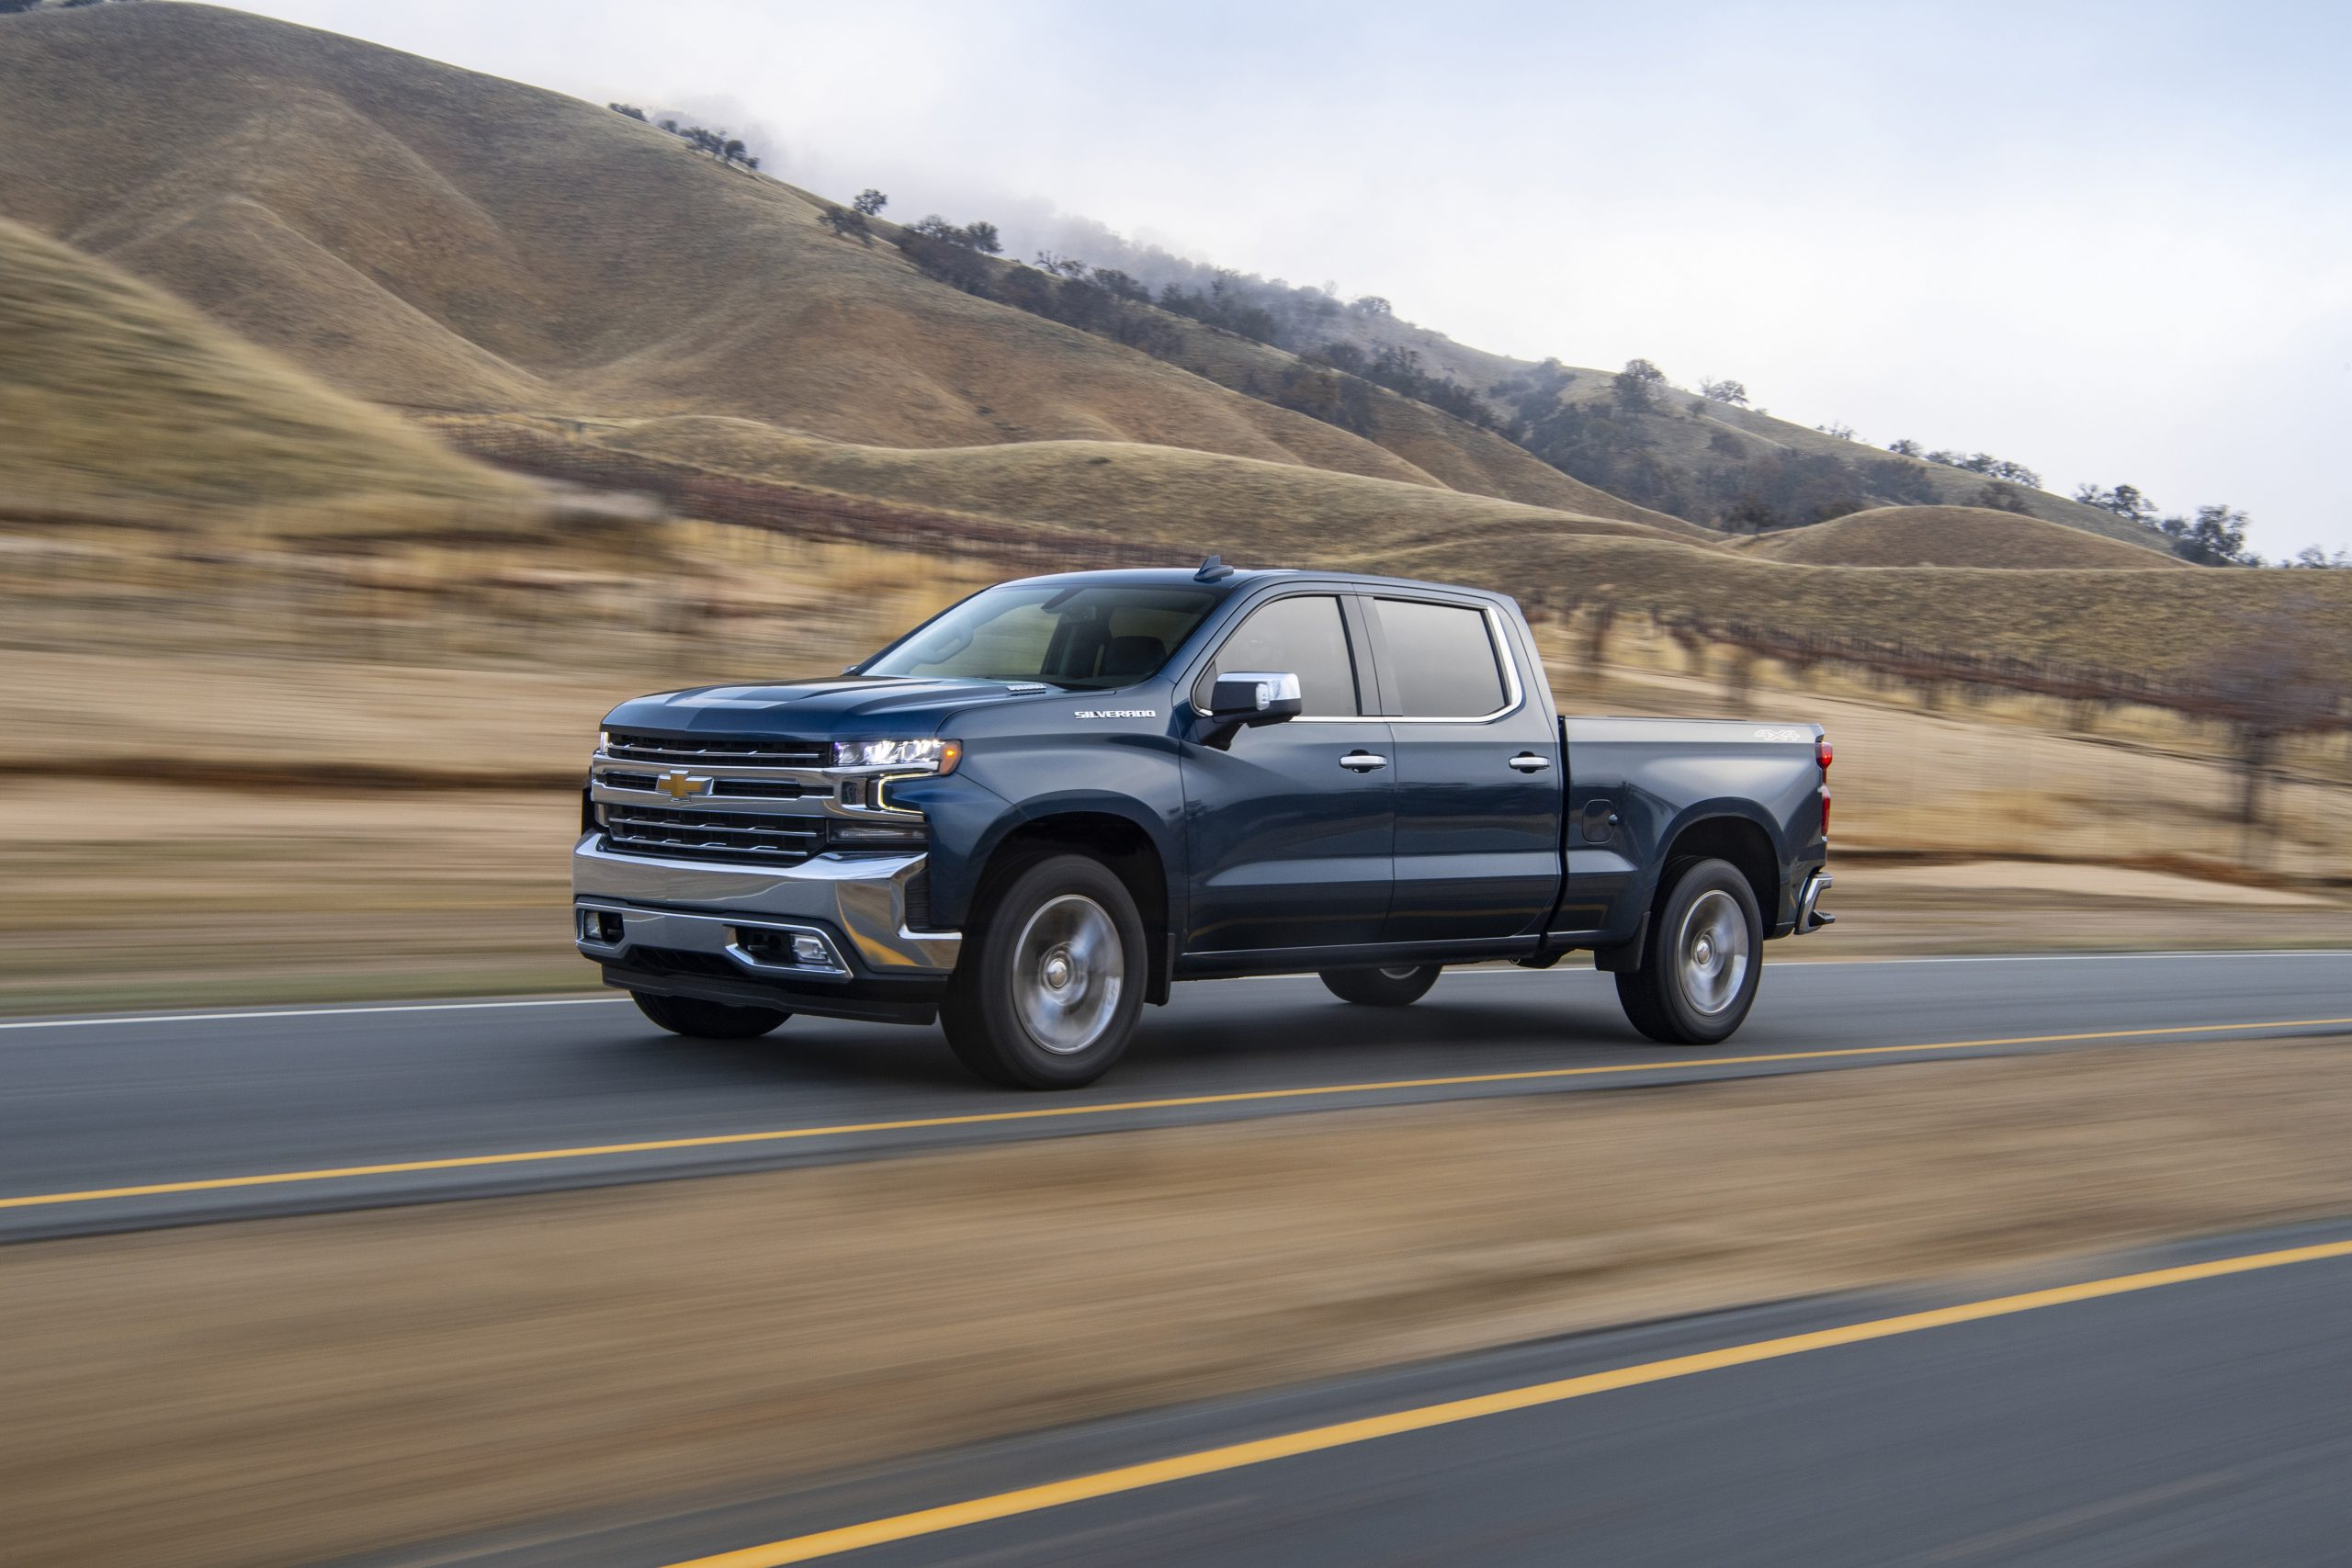 2020 Chevrolet Silverado's New, Advanced 3.0L Duramax Turbo 2021 Chevrolet Silverado Owners Manual, Oil Change, Price